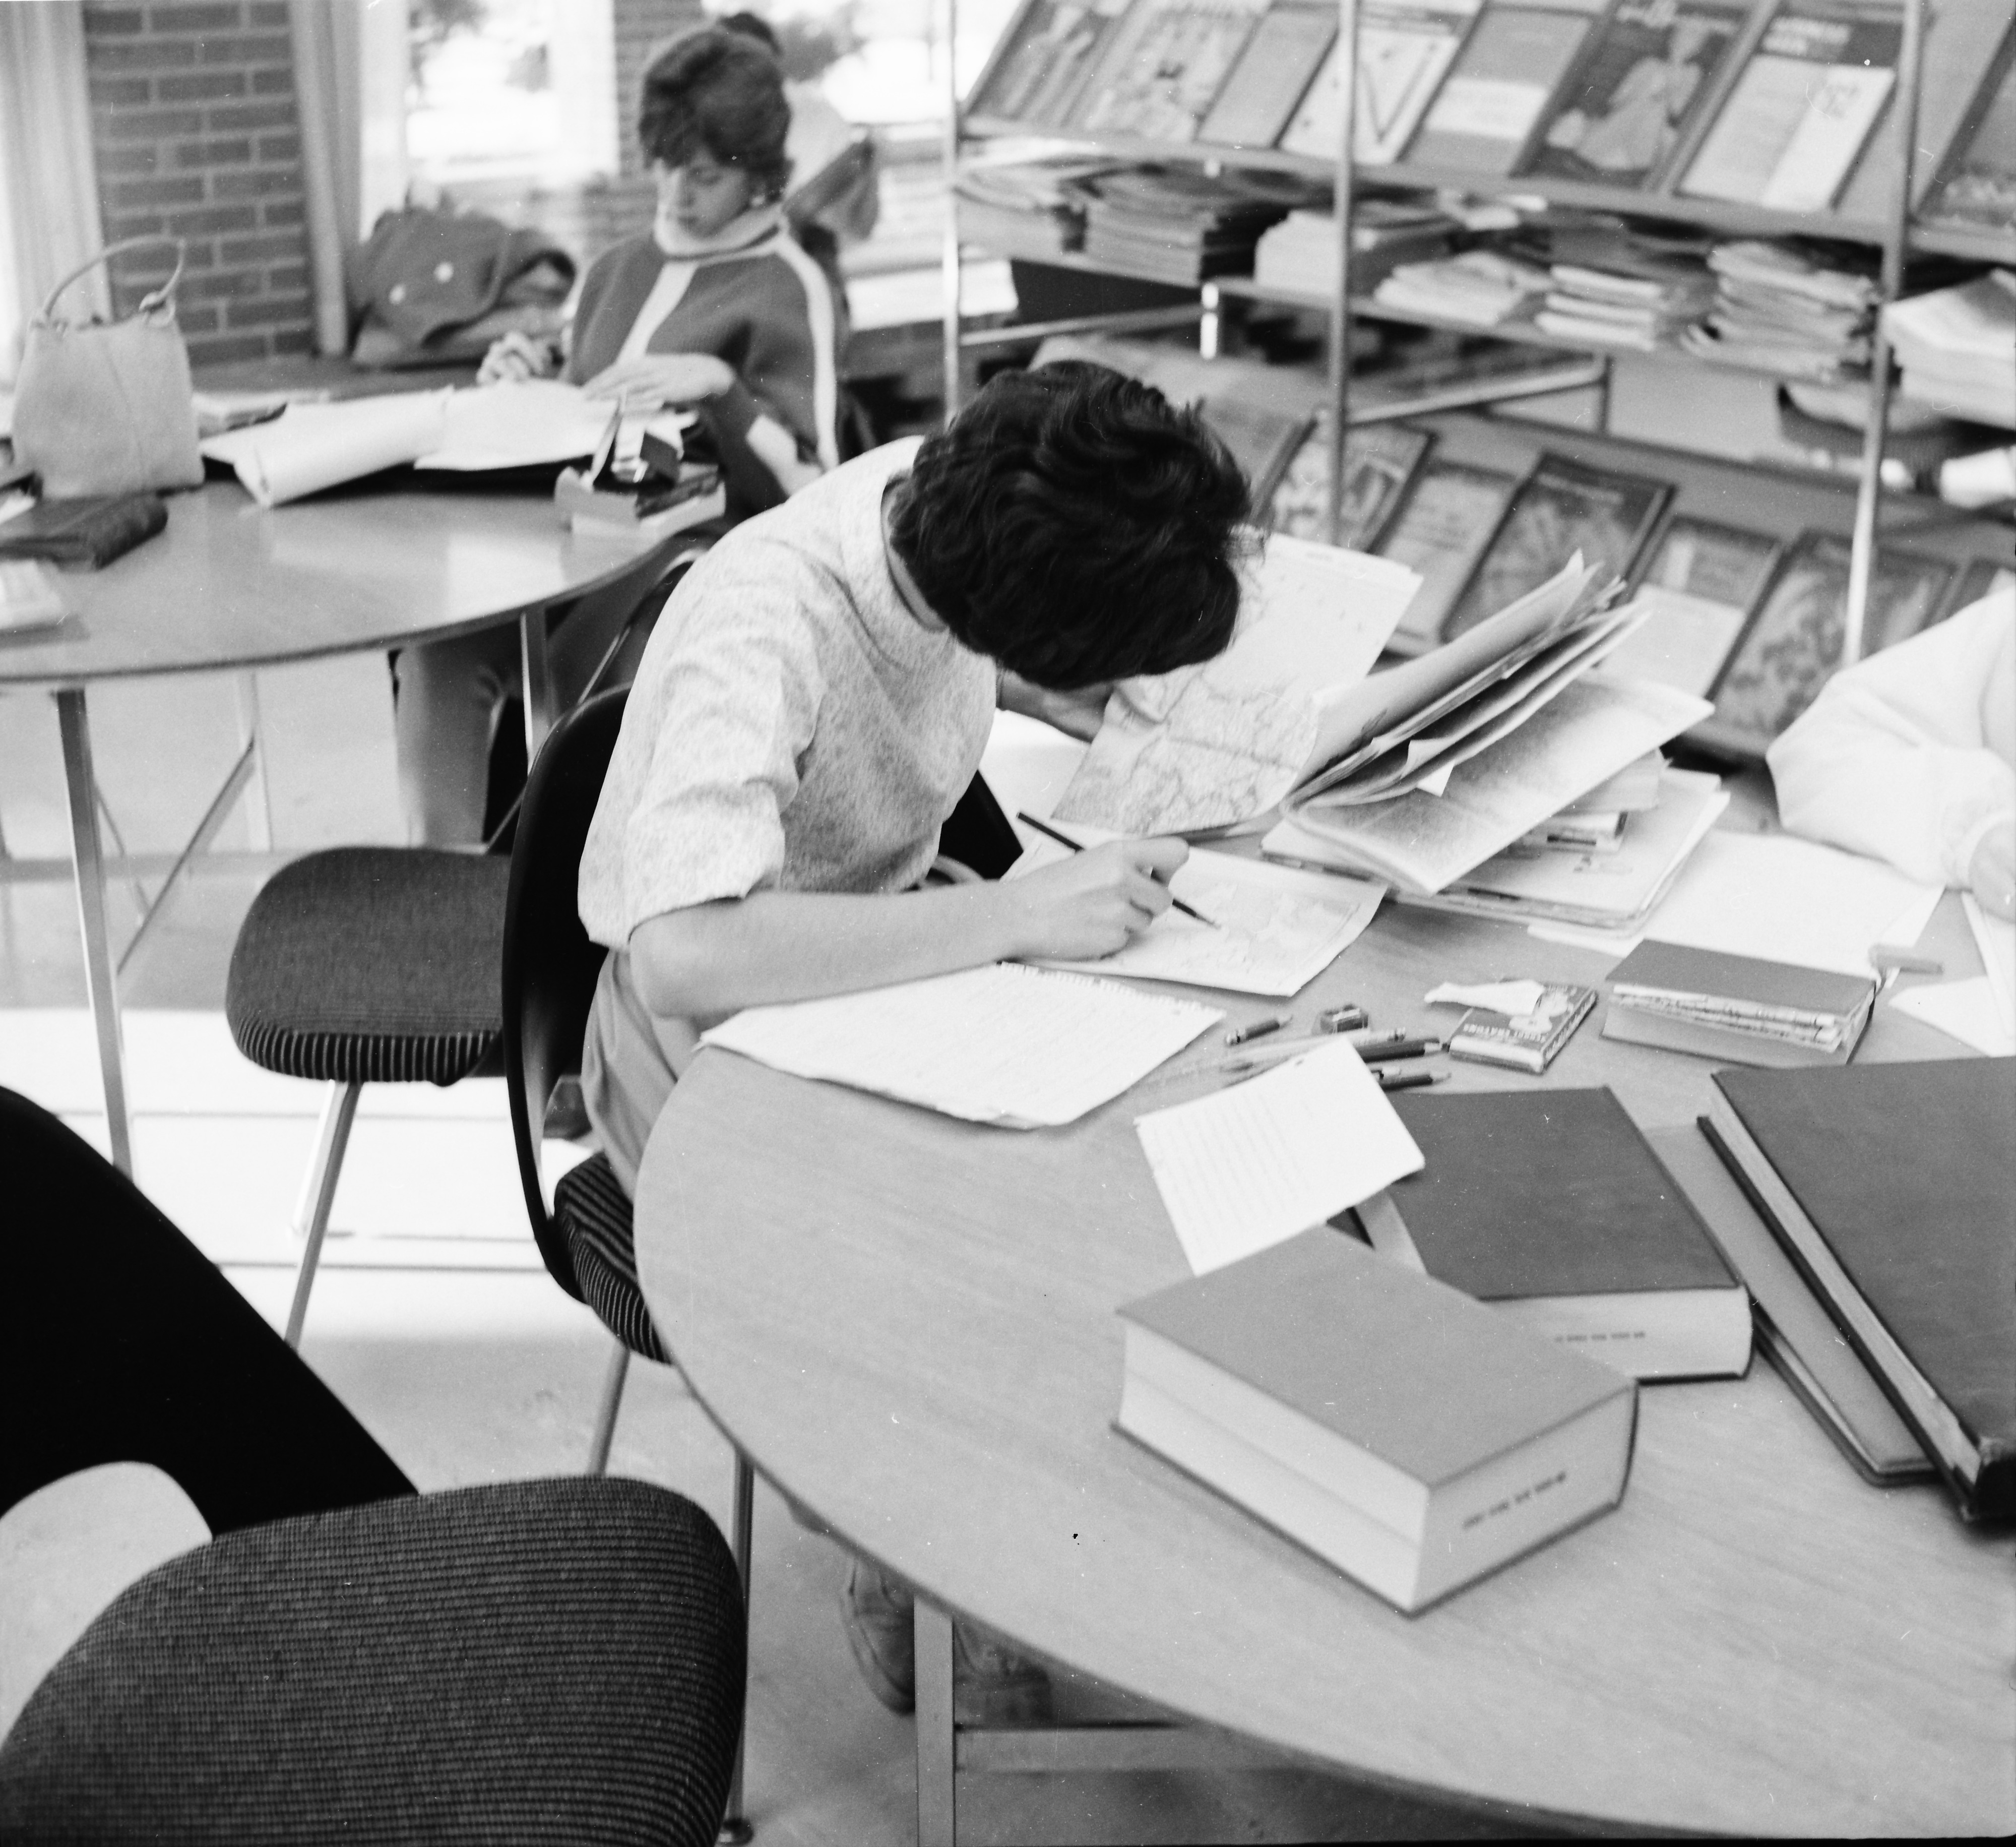 Studying Maps During the Holidays at the Ann Arbor Public Library, December 1961 image